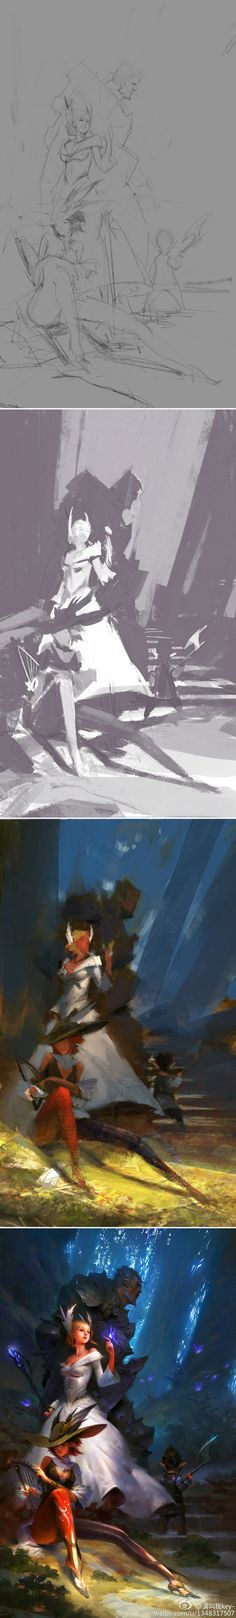 This is beautiful. Drawing process by 微相册.